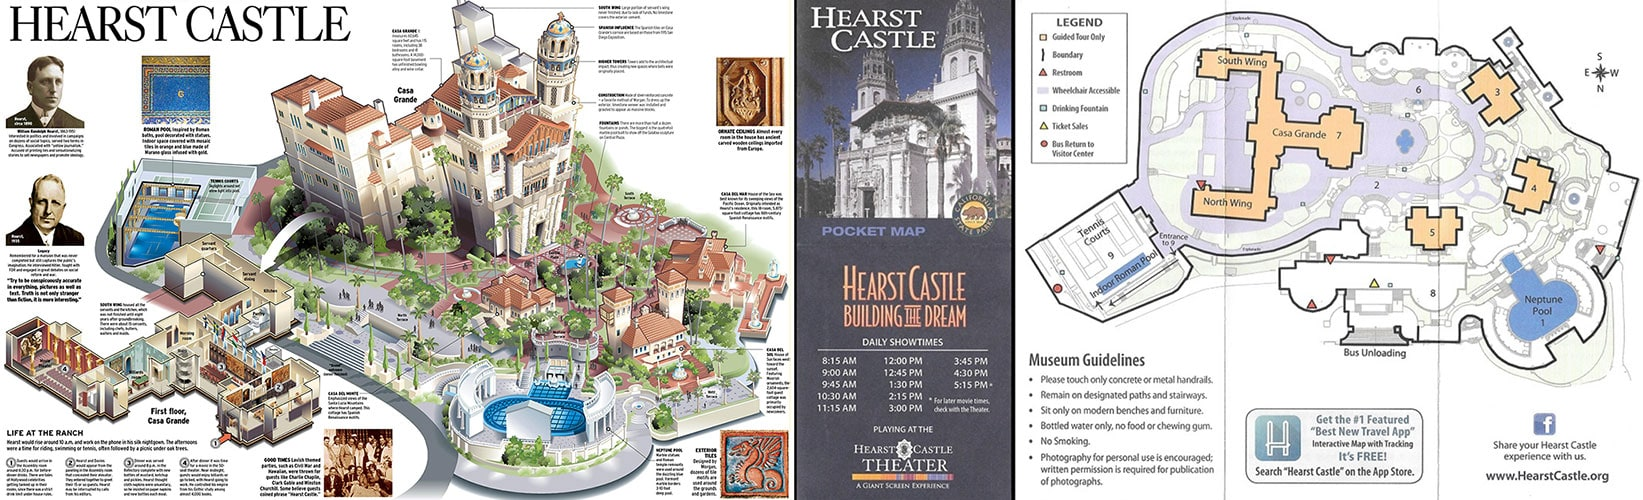 Karte, Plan, Hearst Castle, Kalifornien, USA